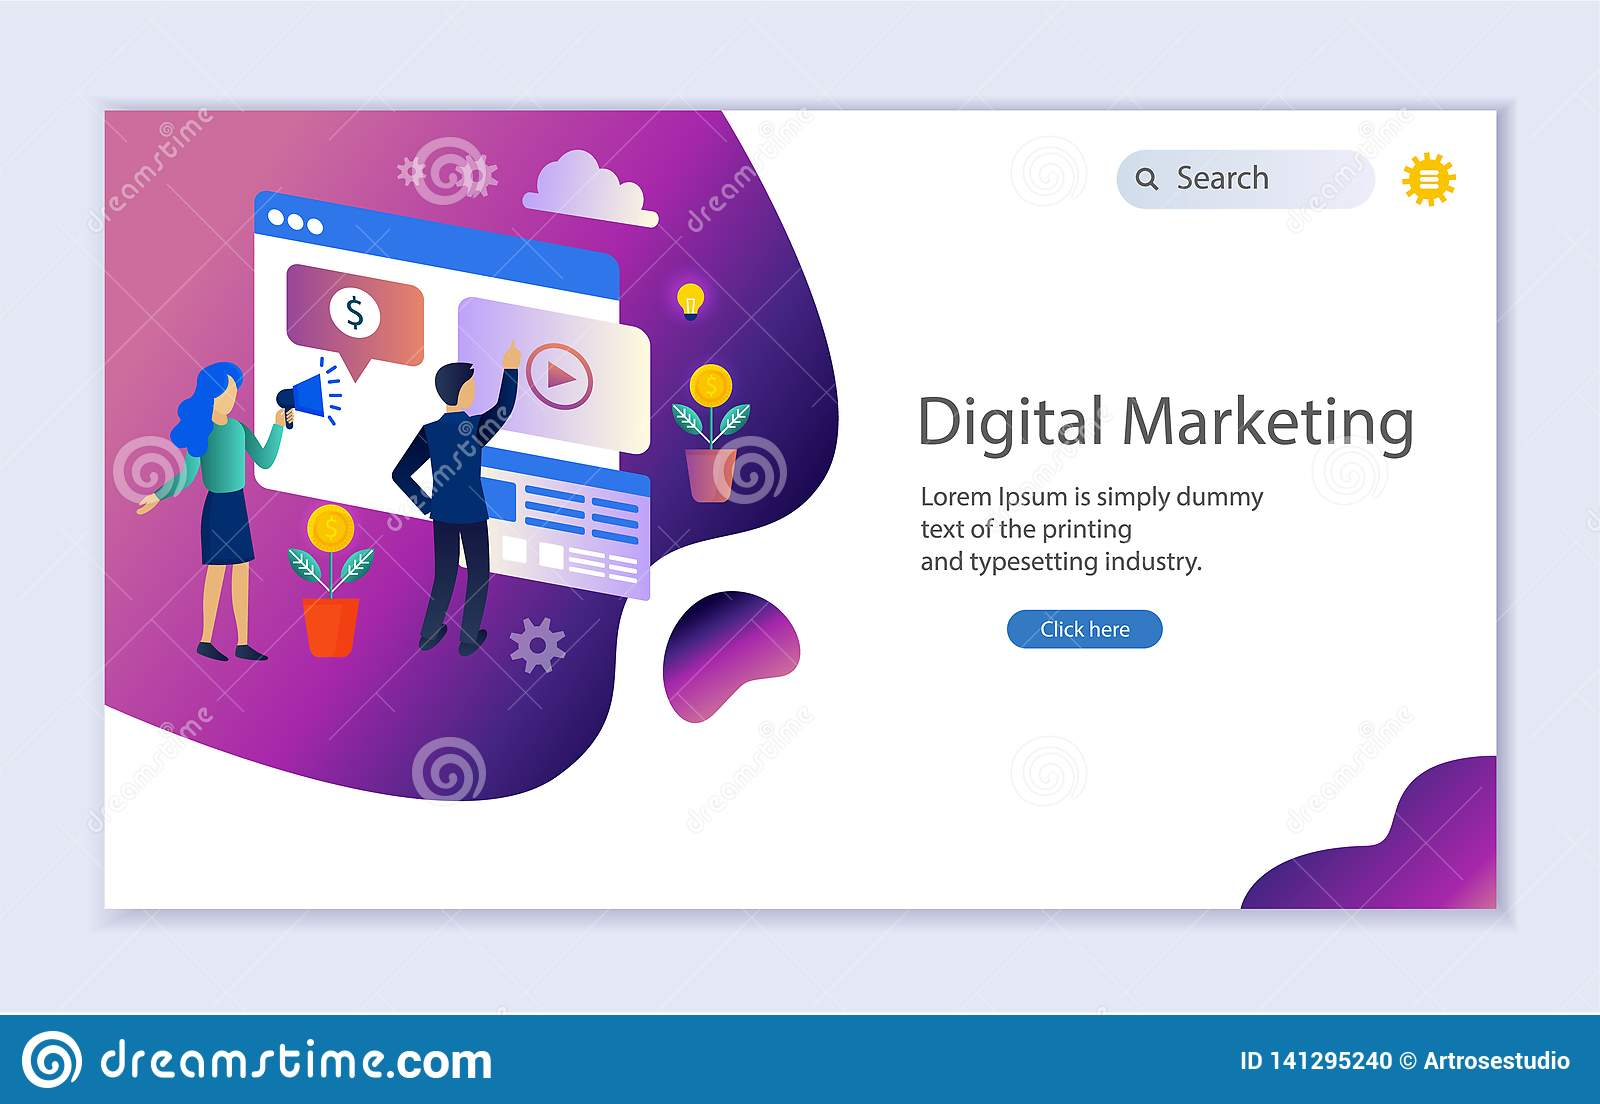 creative website template of web page for digital marketing stock vector illustration of banking company 141295240 dreamstime com